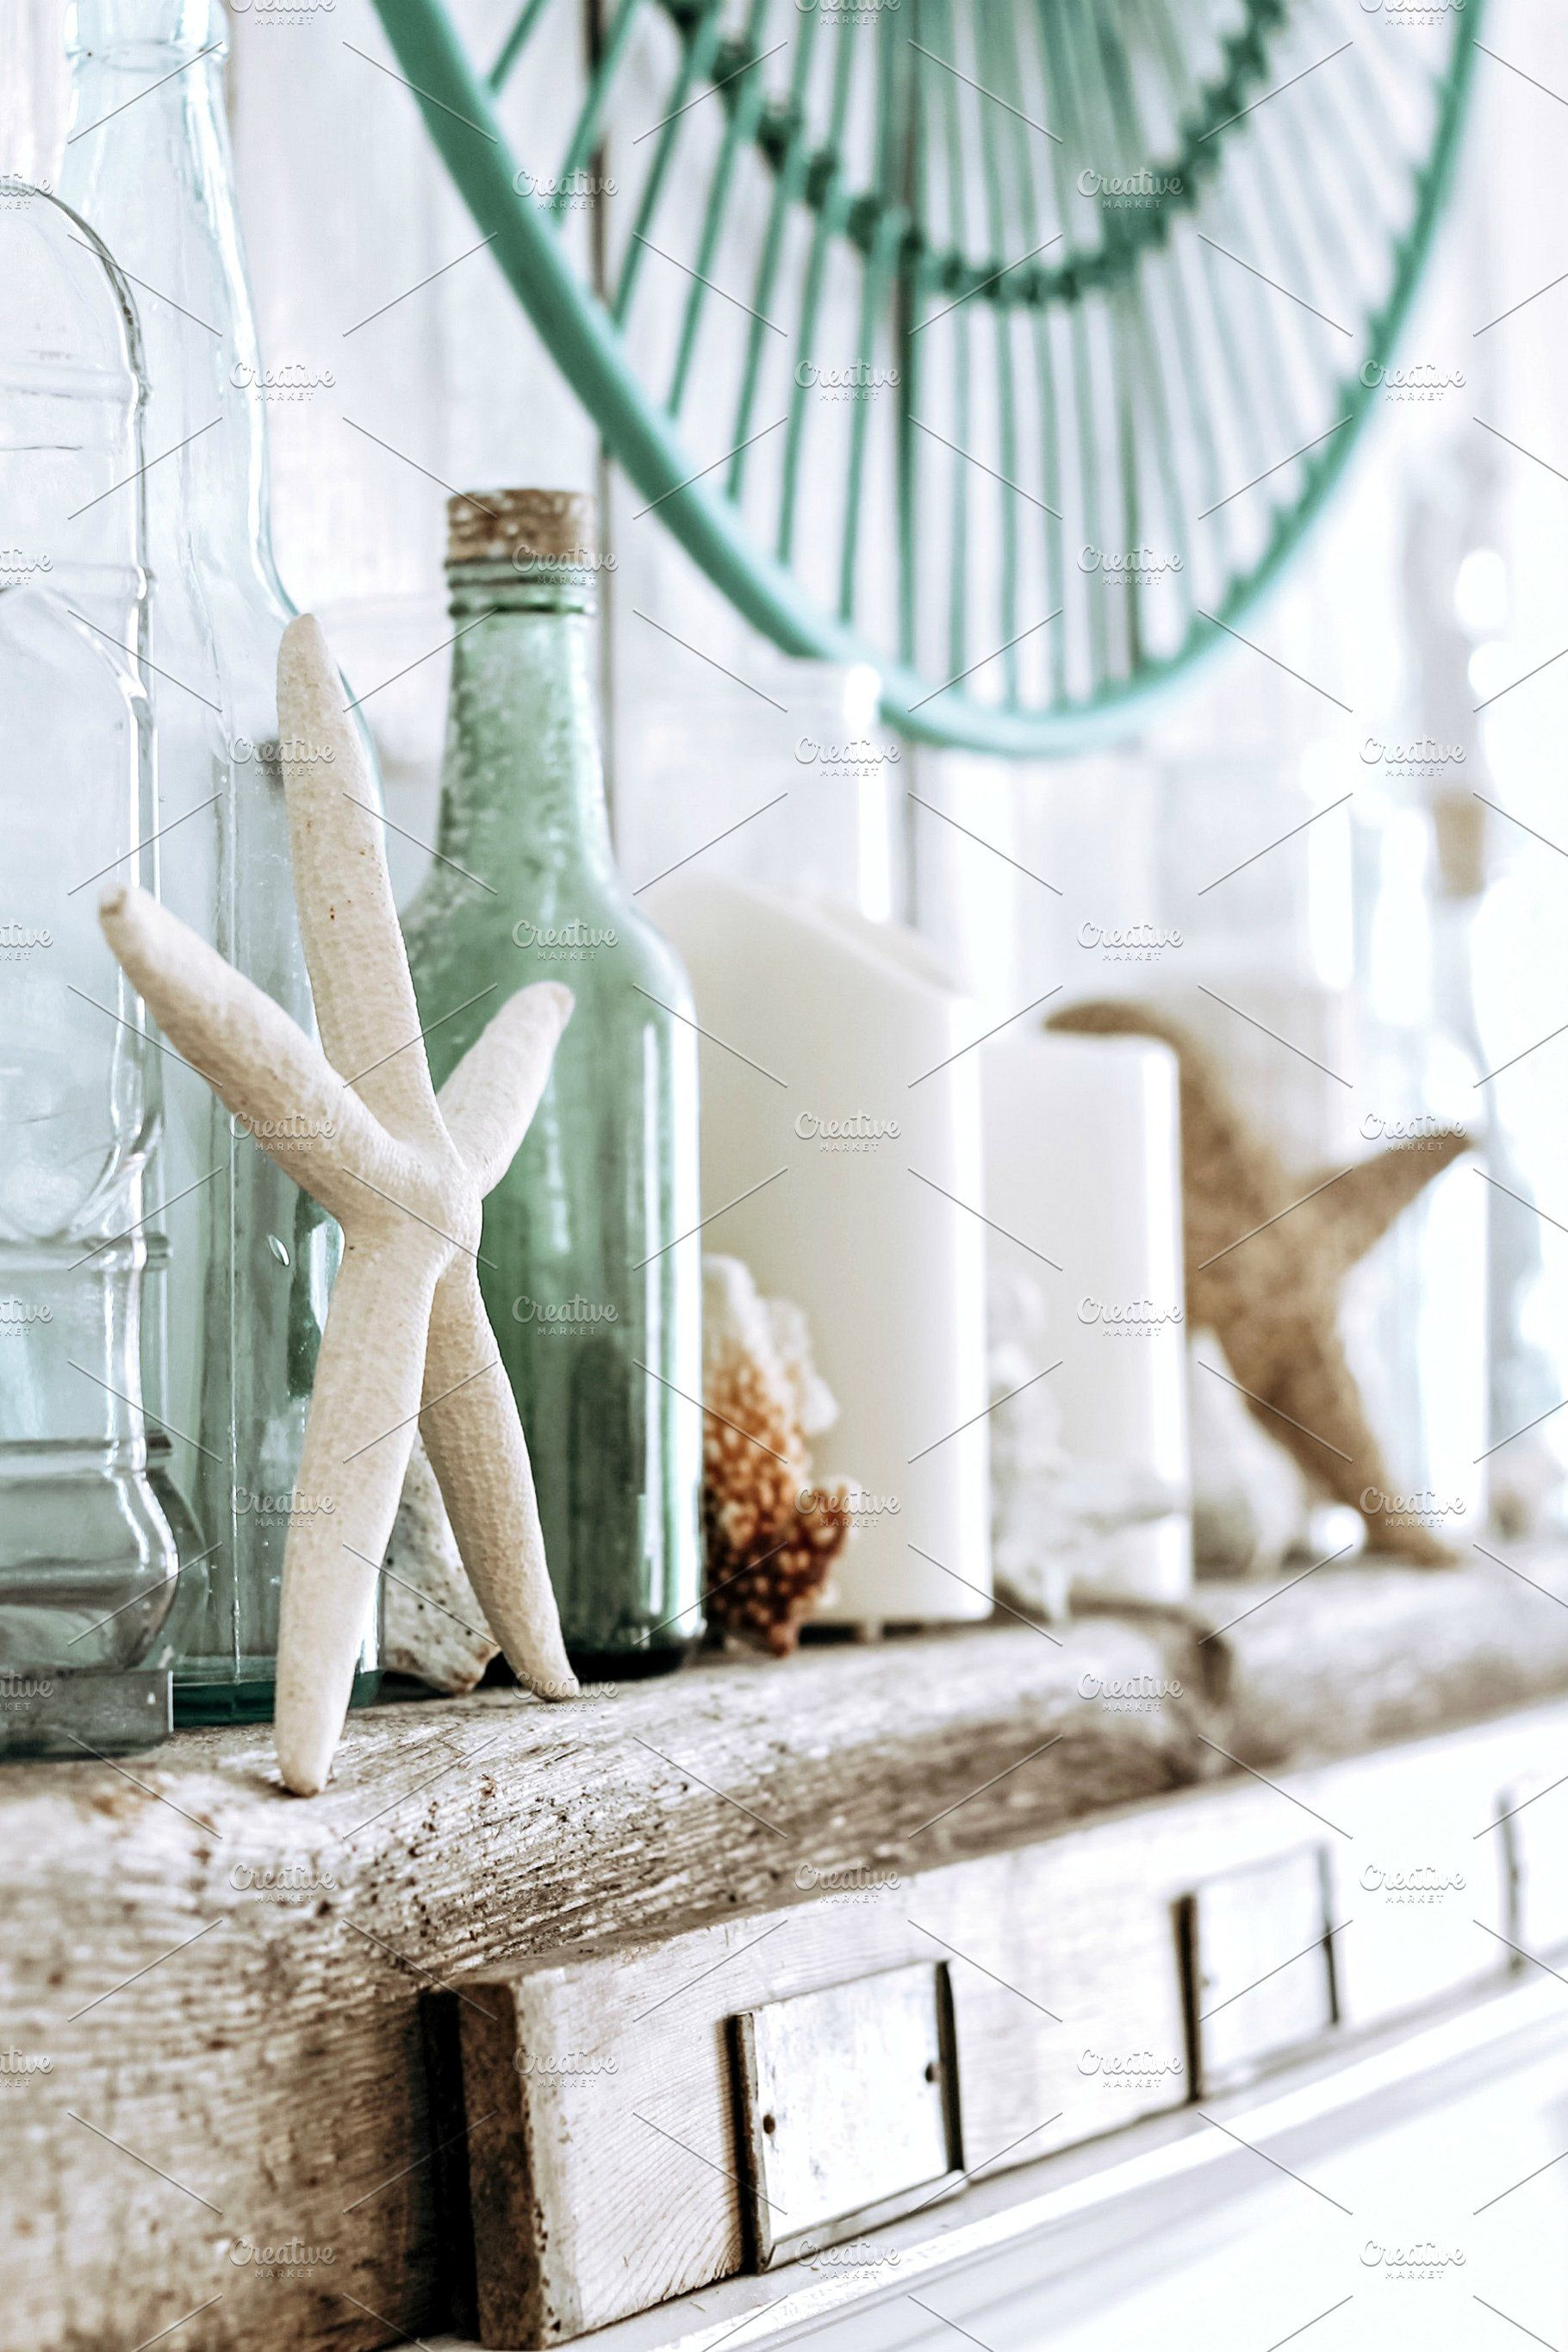 Ad Old Bottles And Starfish Display By The Wicker House On